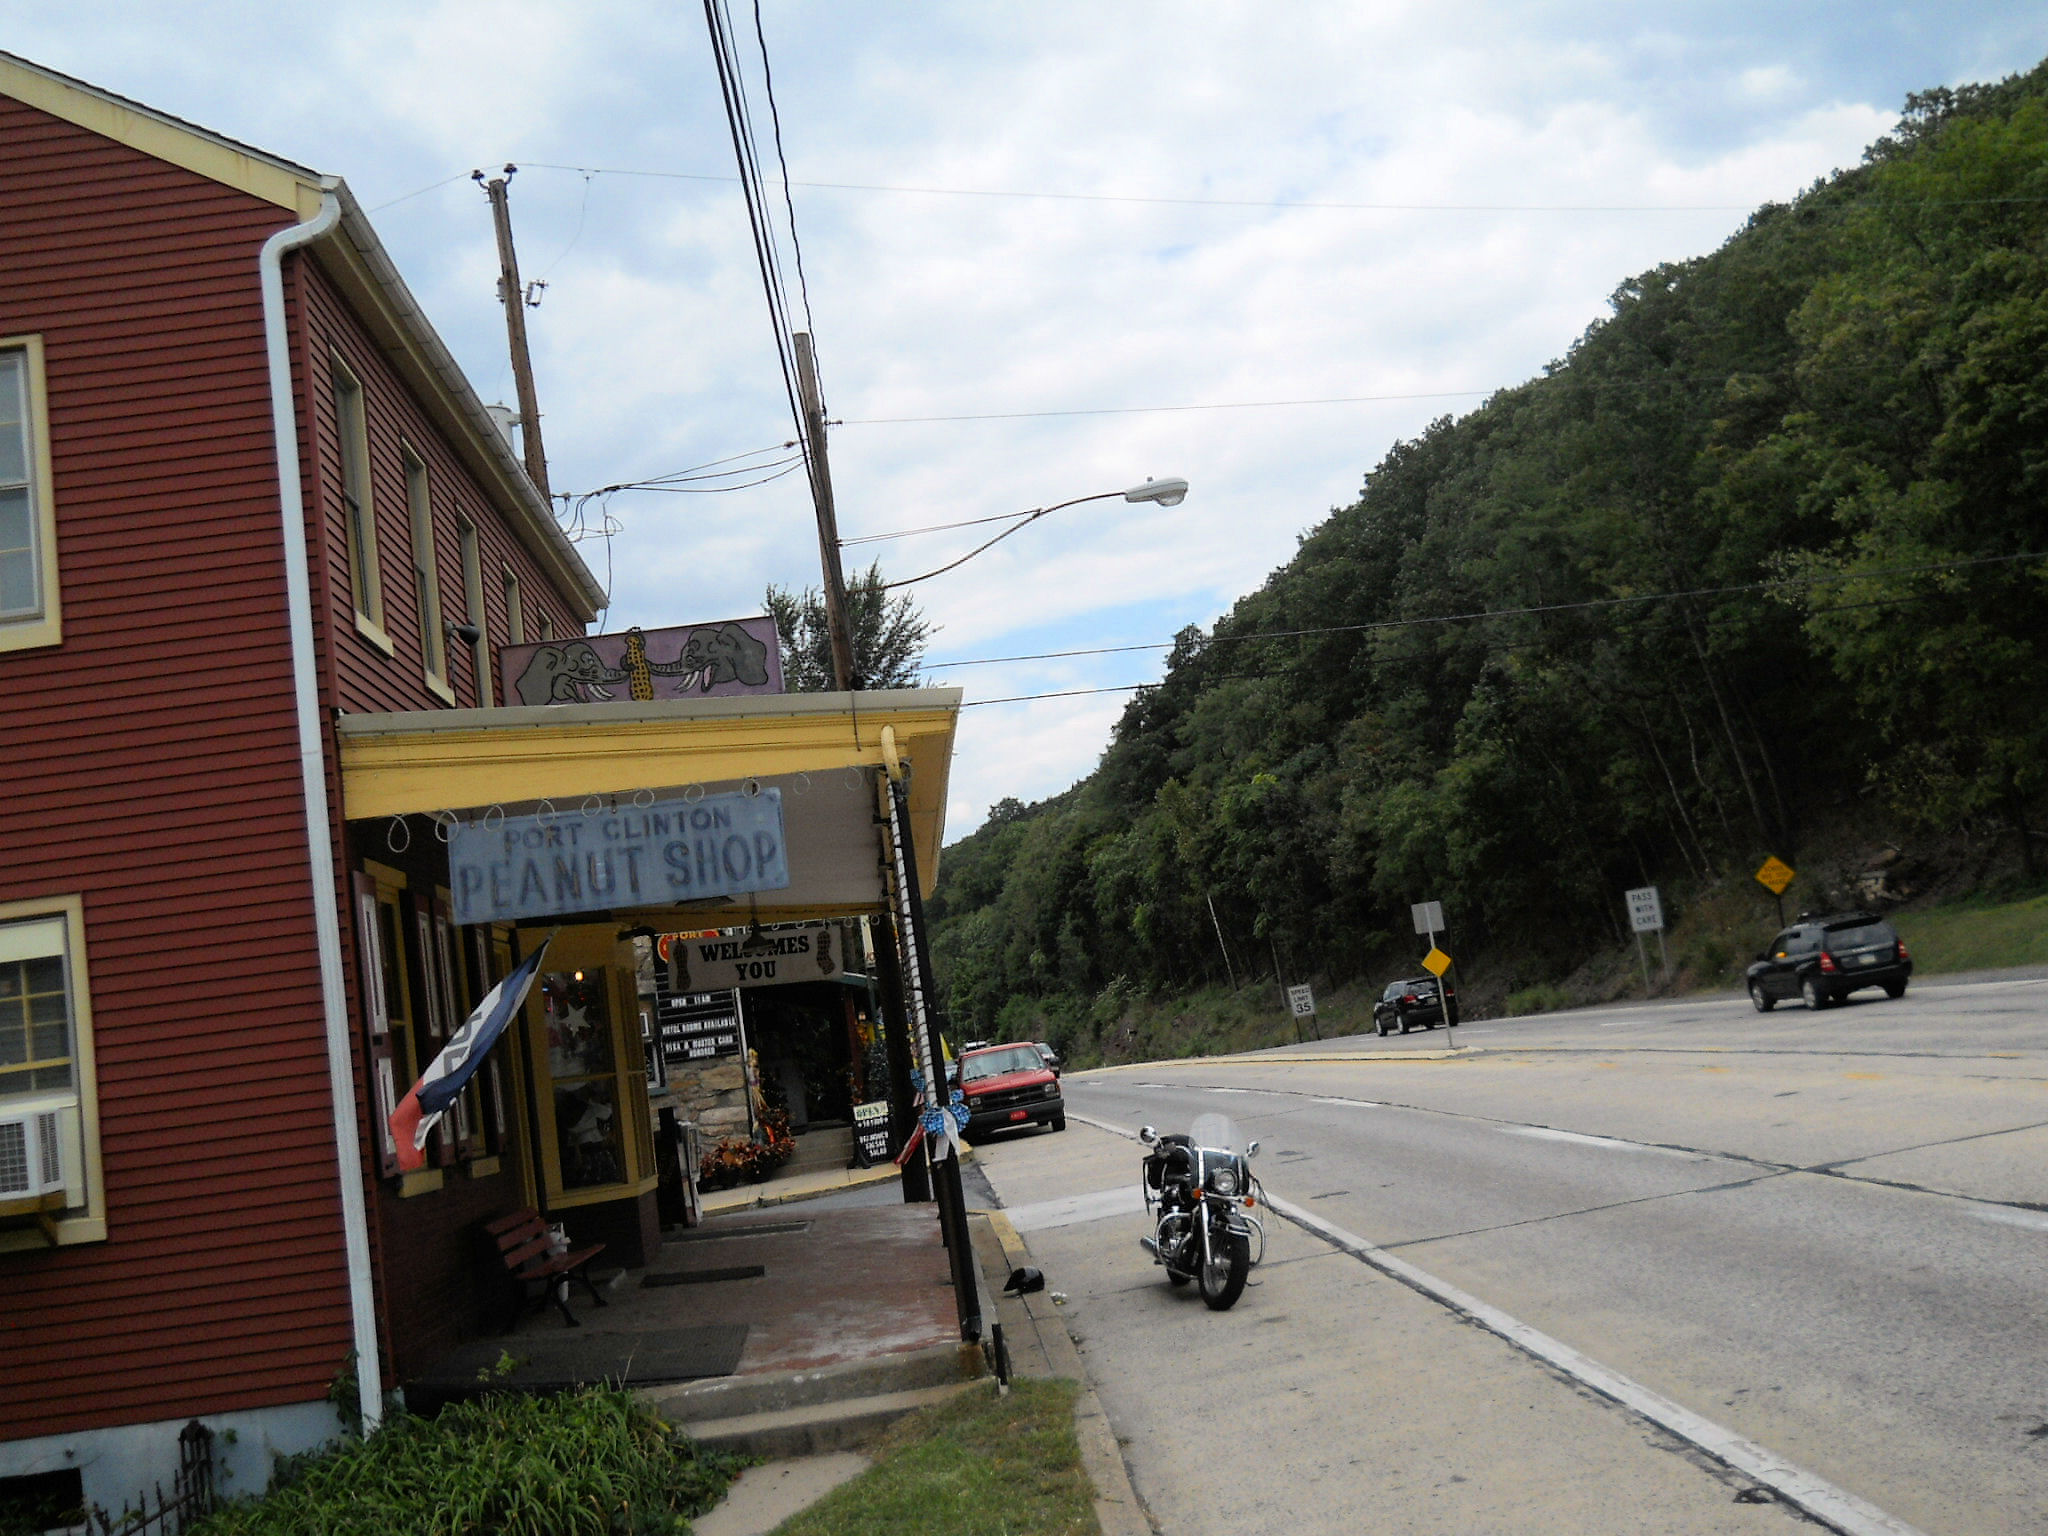 The Peanut Is Located Beside Port Clinton Hotel